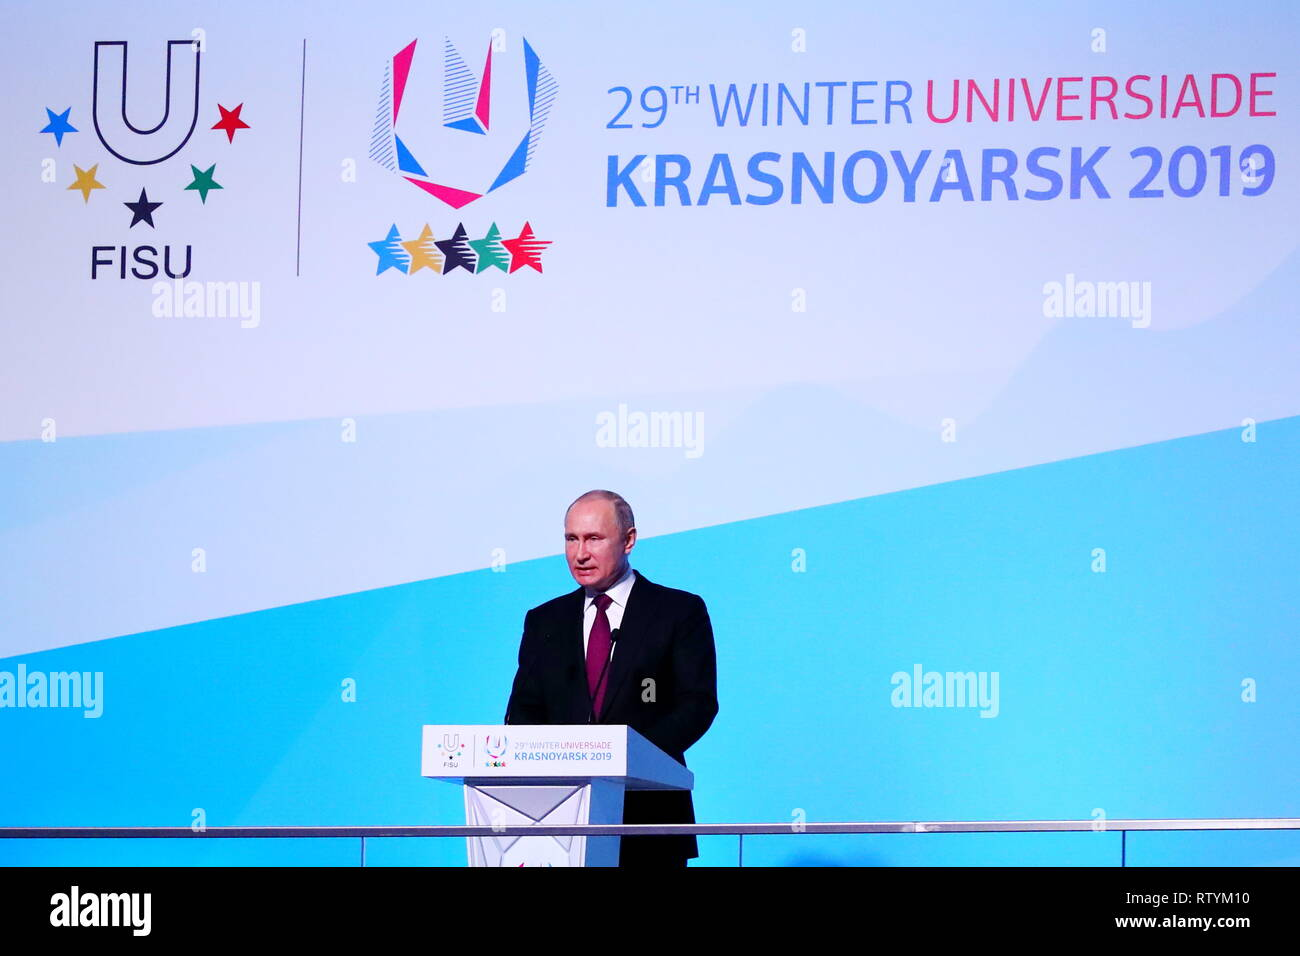 Krasnoyarsk, Russia. 2nd March, 2019. Vladimir Vladimirovich Putin, MARCH 2, 2019 : Opening Ceremony during 29th Winter Universiade Krasnoyarsk 2019 at Platinum Arena, Krasnoyarsk, Russia. Credit: Naoki Nishimura/AFLO SPORT/Alamy Live News - Stock Image